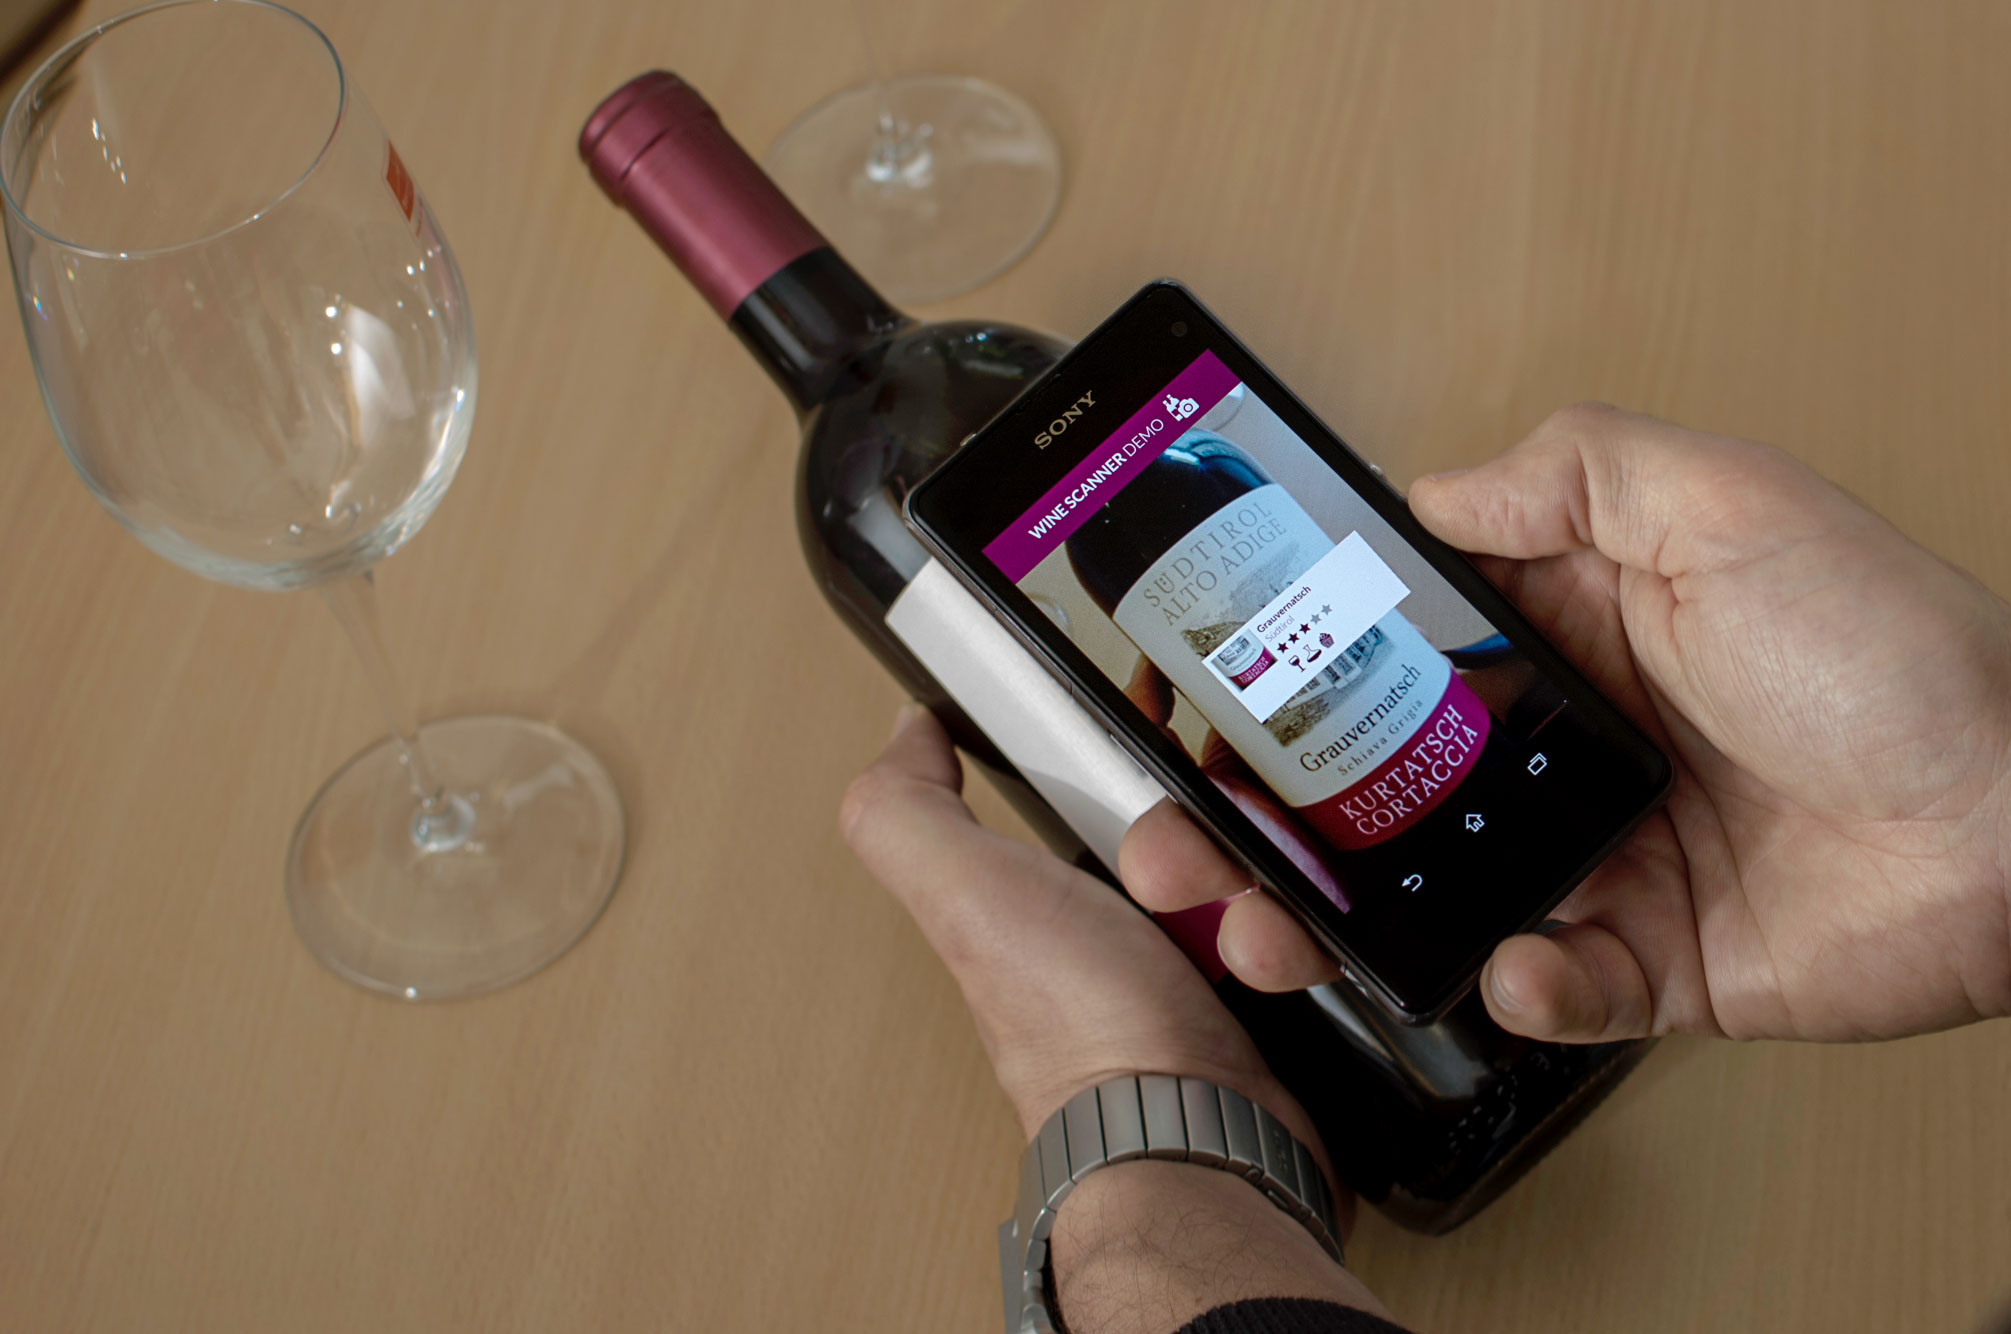 Wine bottle label augmented using Wikitude Image Tracking Cloud Recognition